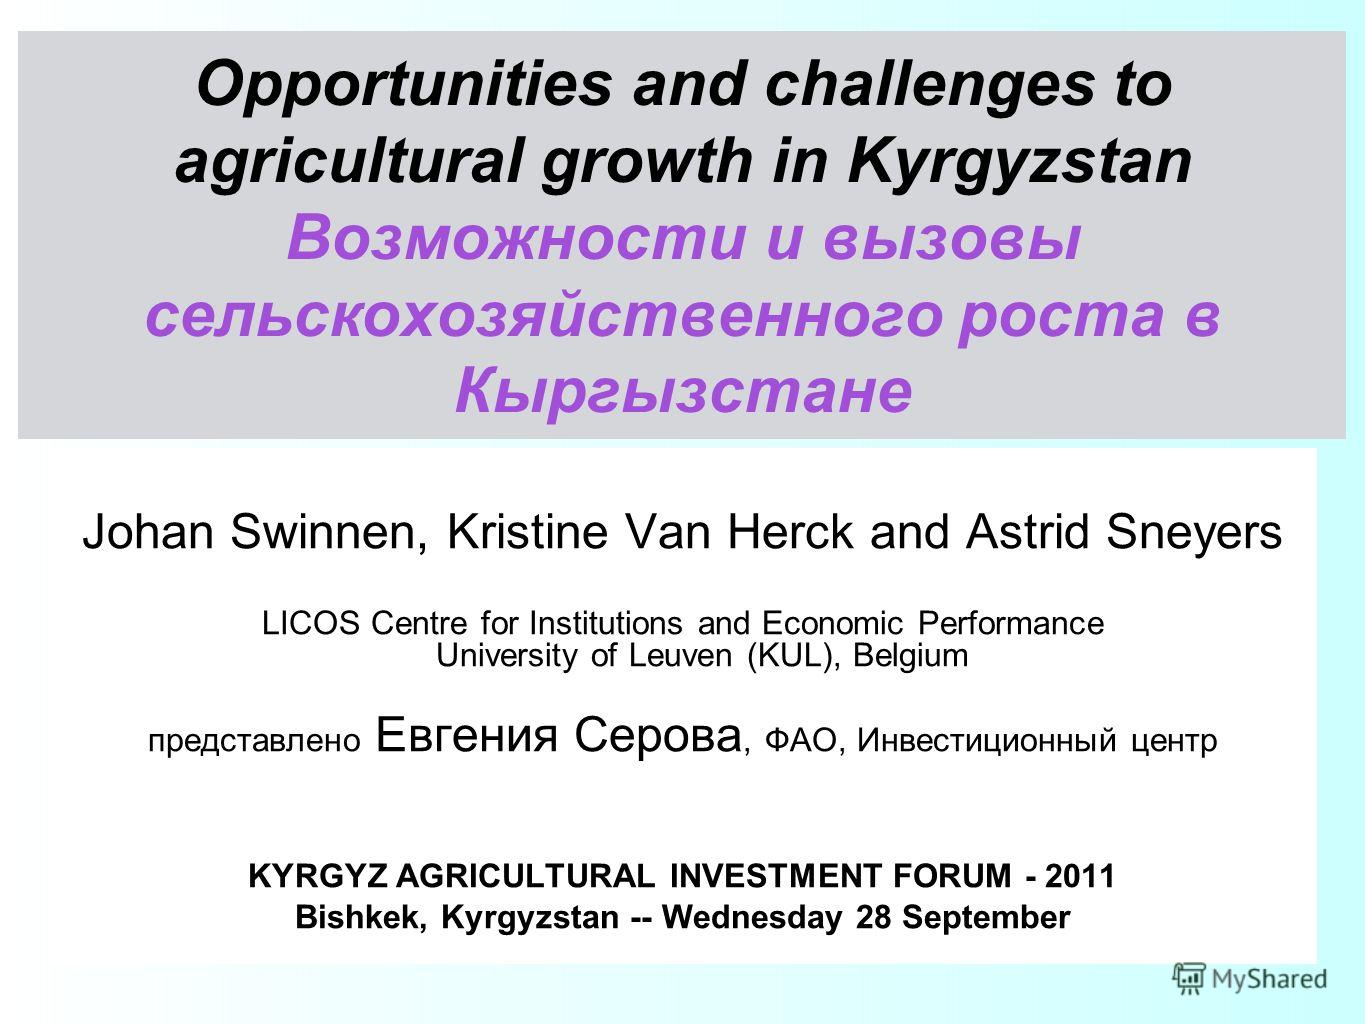 Opportunities and challenges to agricultural growth in Kyrgyzstan Возможности и вызовы сельскохозяйственного роста в Кыргызстане Johan Swinnen, Kristine Van Herck and Astrid Sneyers LICOS Centre for Institutions and Economic Performance University of